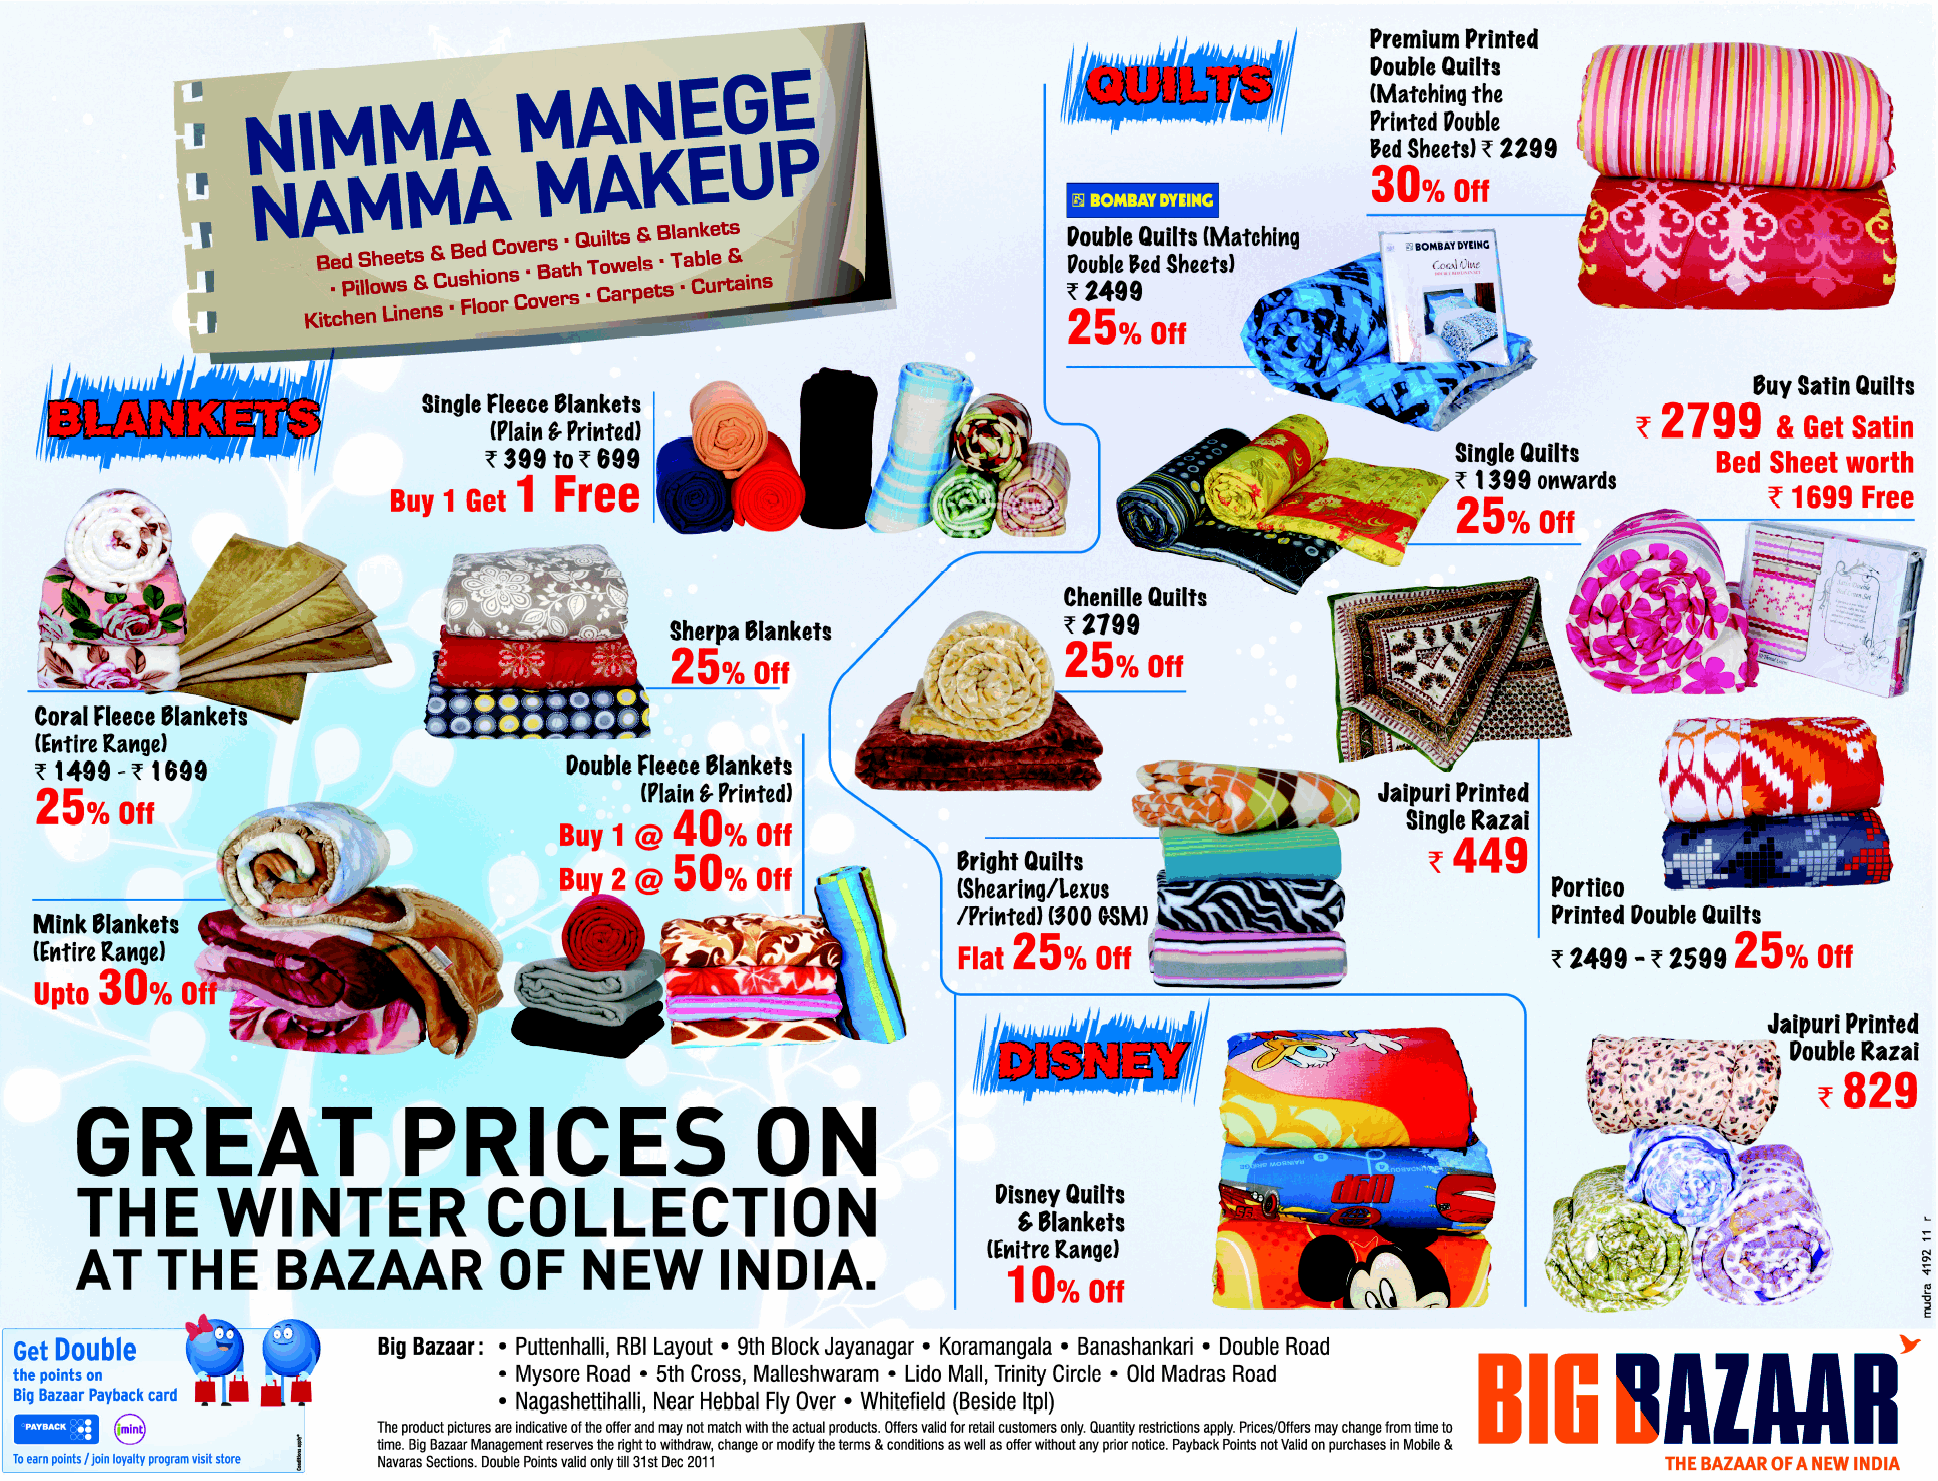 Big Bazaar - Offers on Winter Collection Furnishings